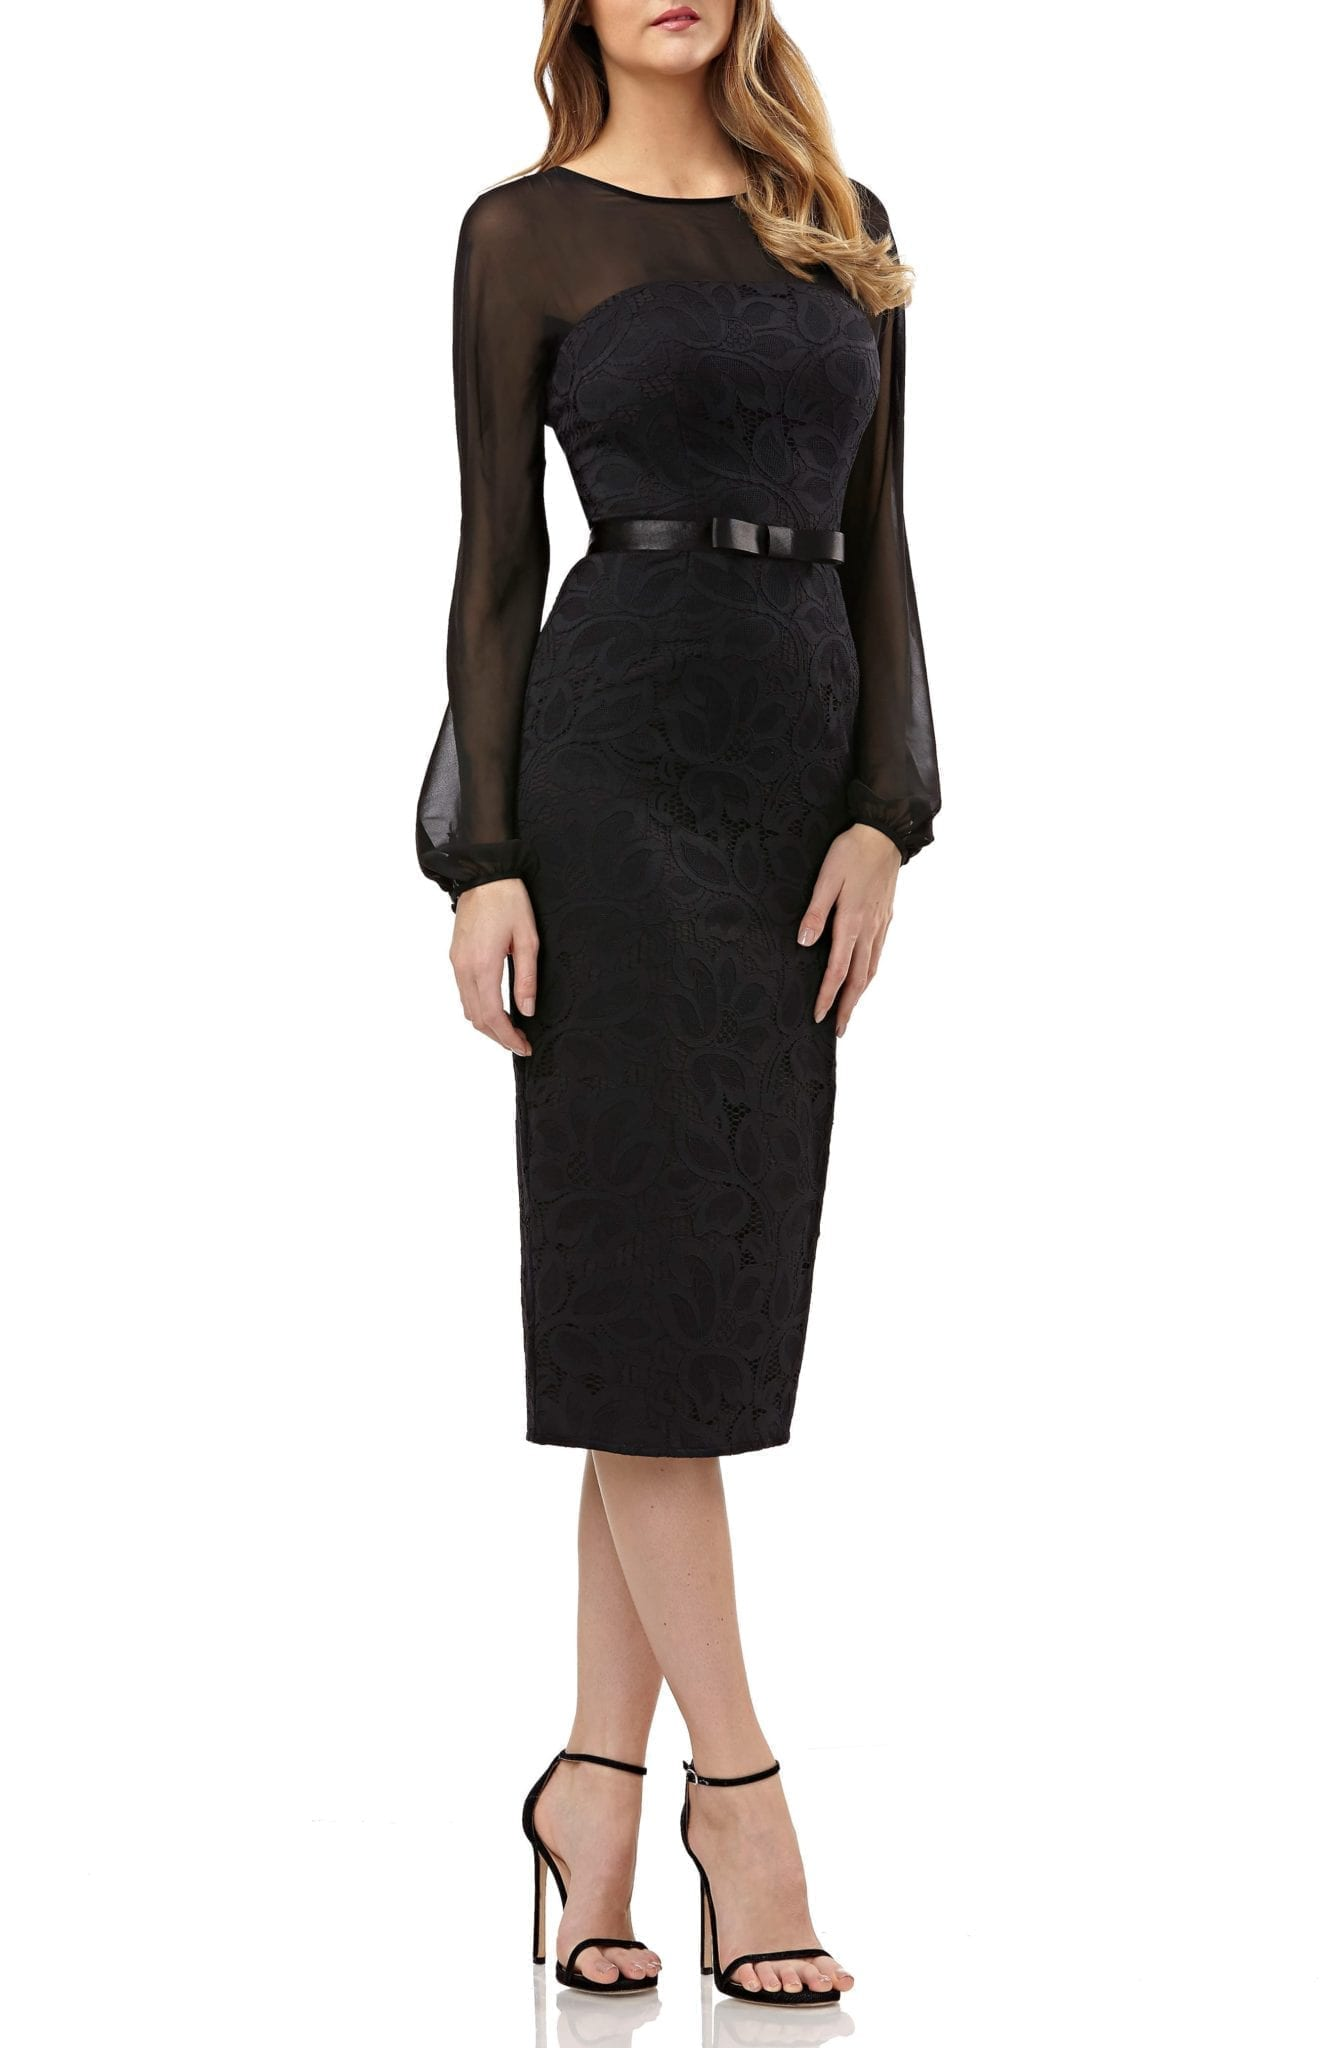 KAY UNGER Chiffon & Lace Sheath Black Dress